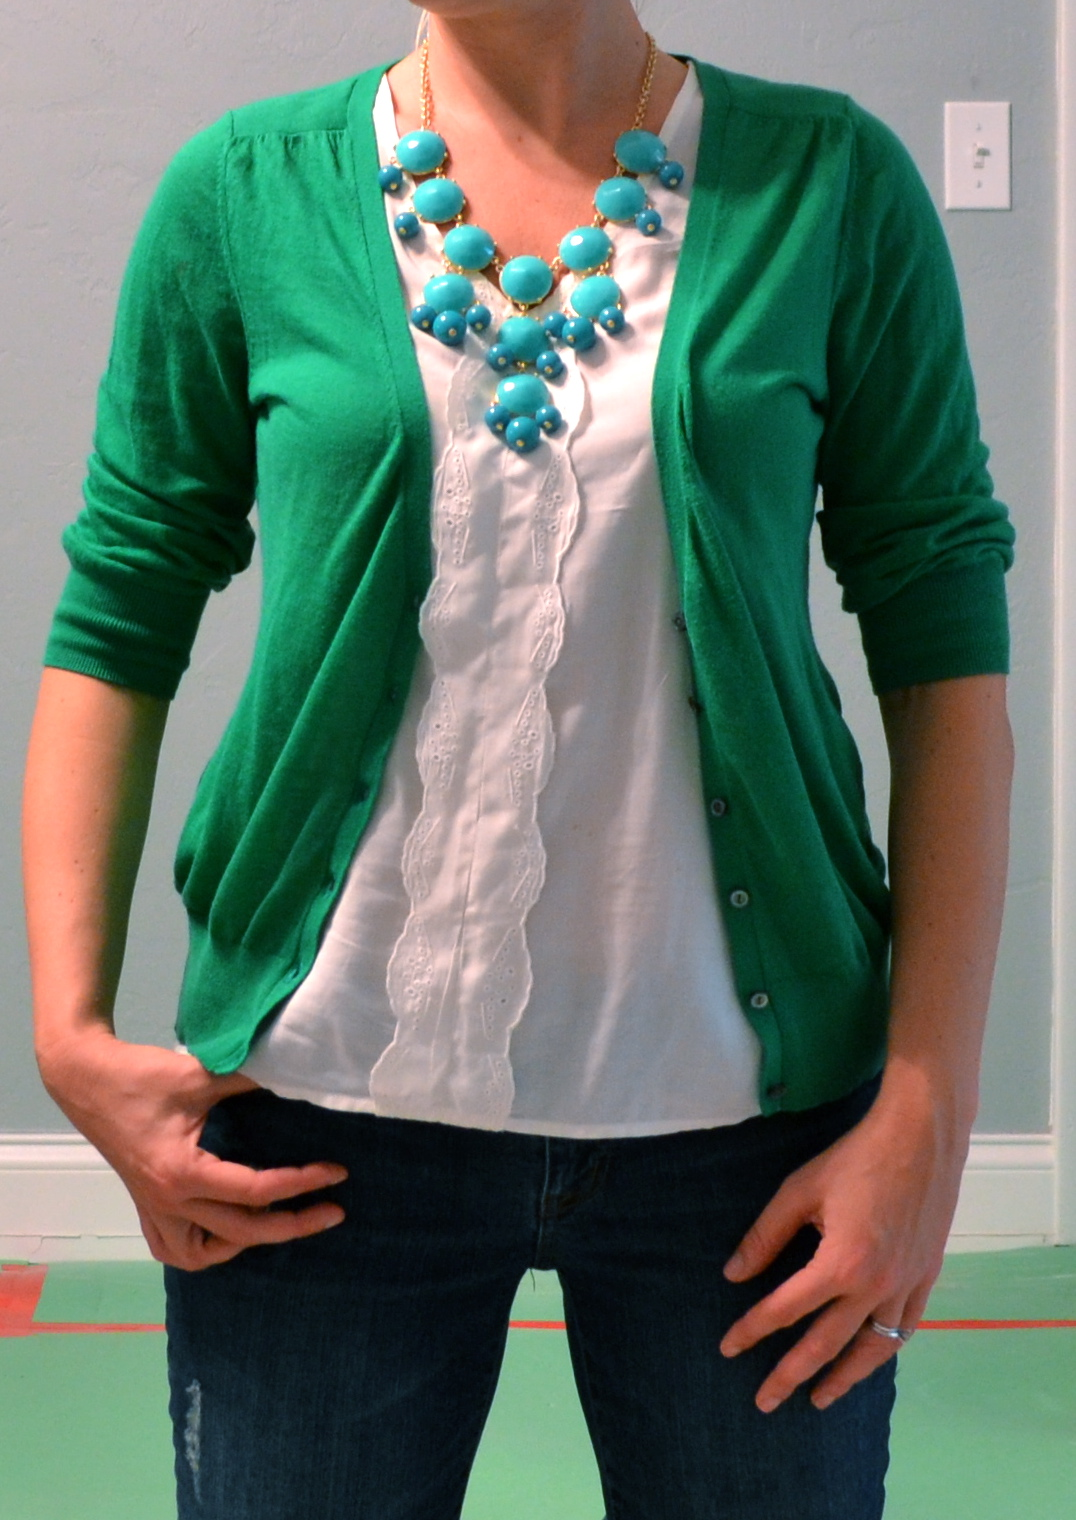 Find the latest and trendy styles of green cardigan at ZAFUL. We are pleased you with the latest trends in high fashion green cardigan.